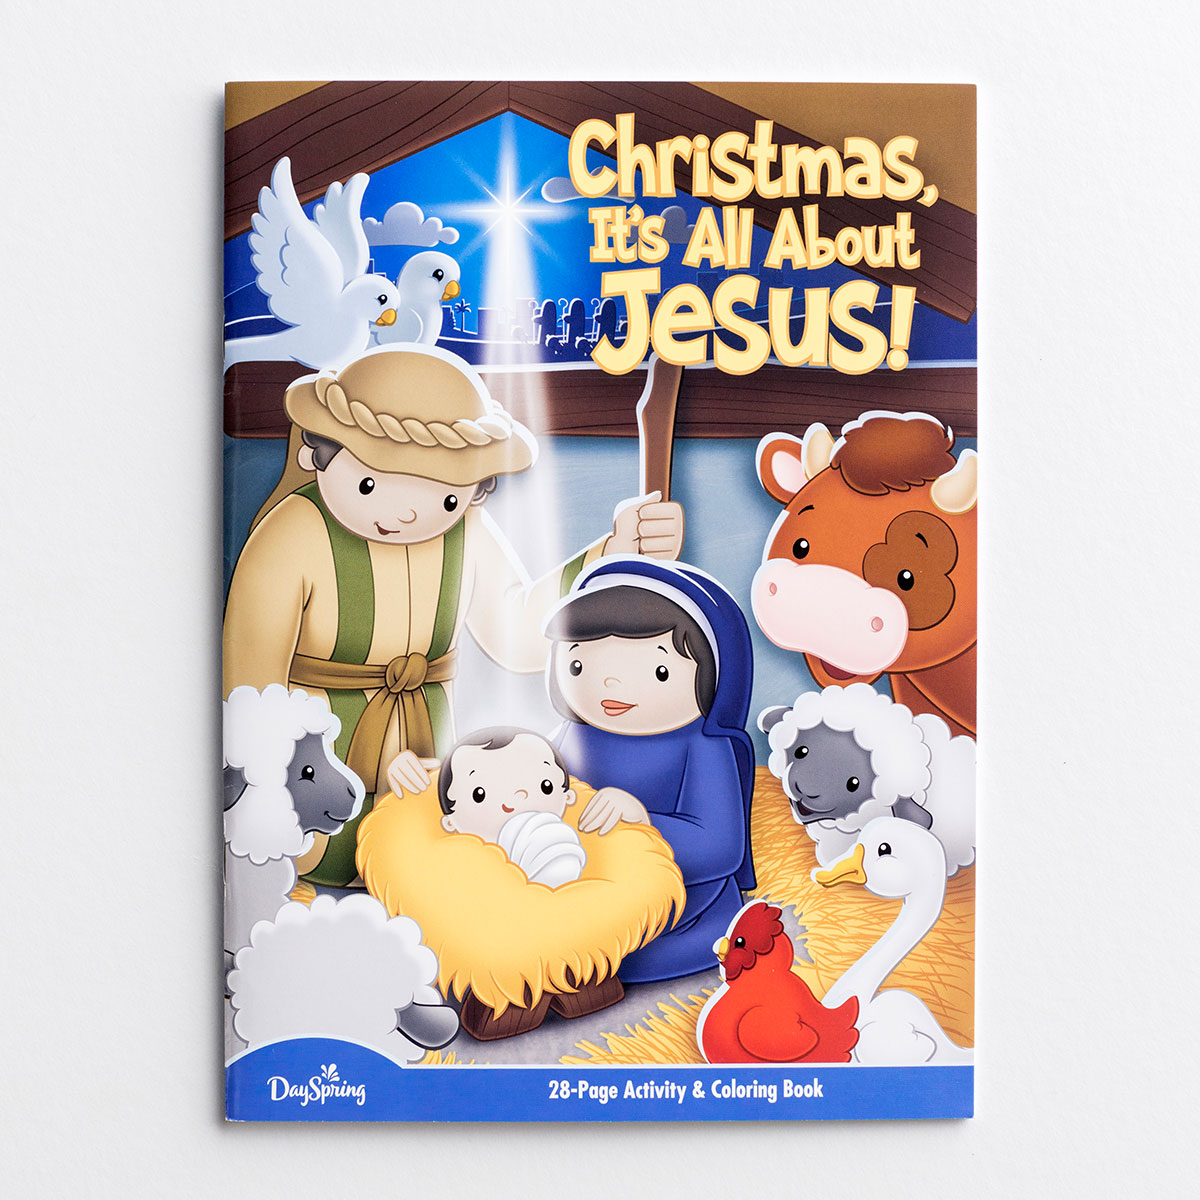 Christmas, It's All About Jesus - Activity & Coloring Book